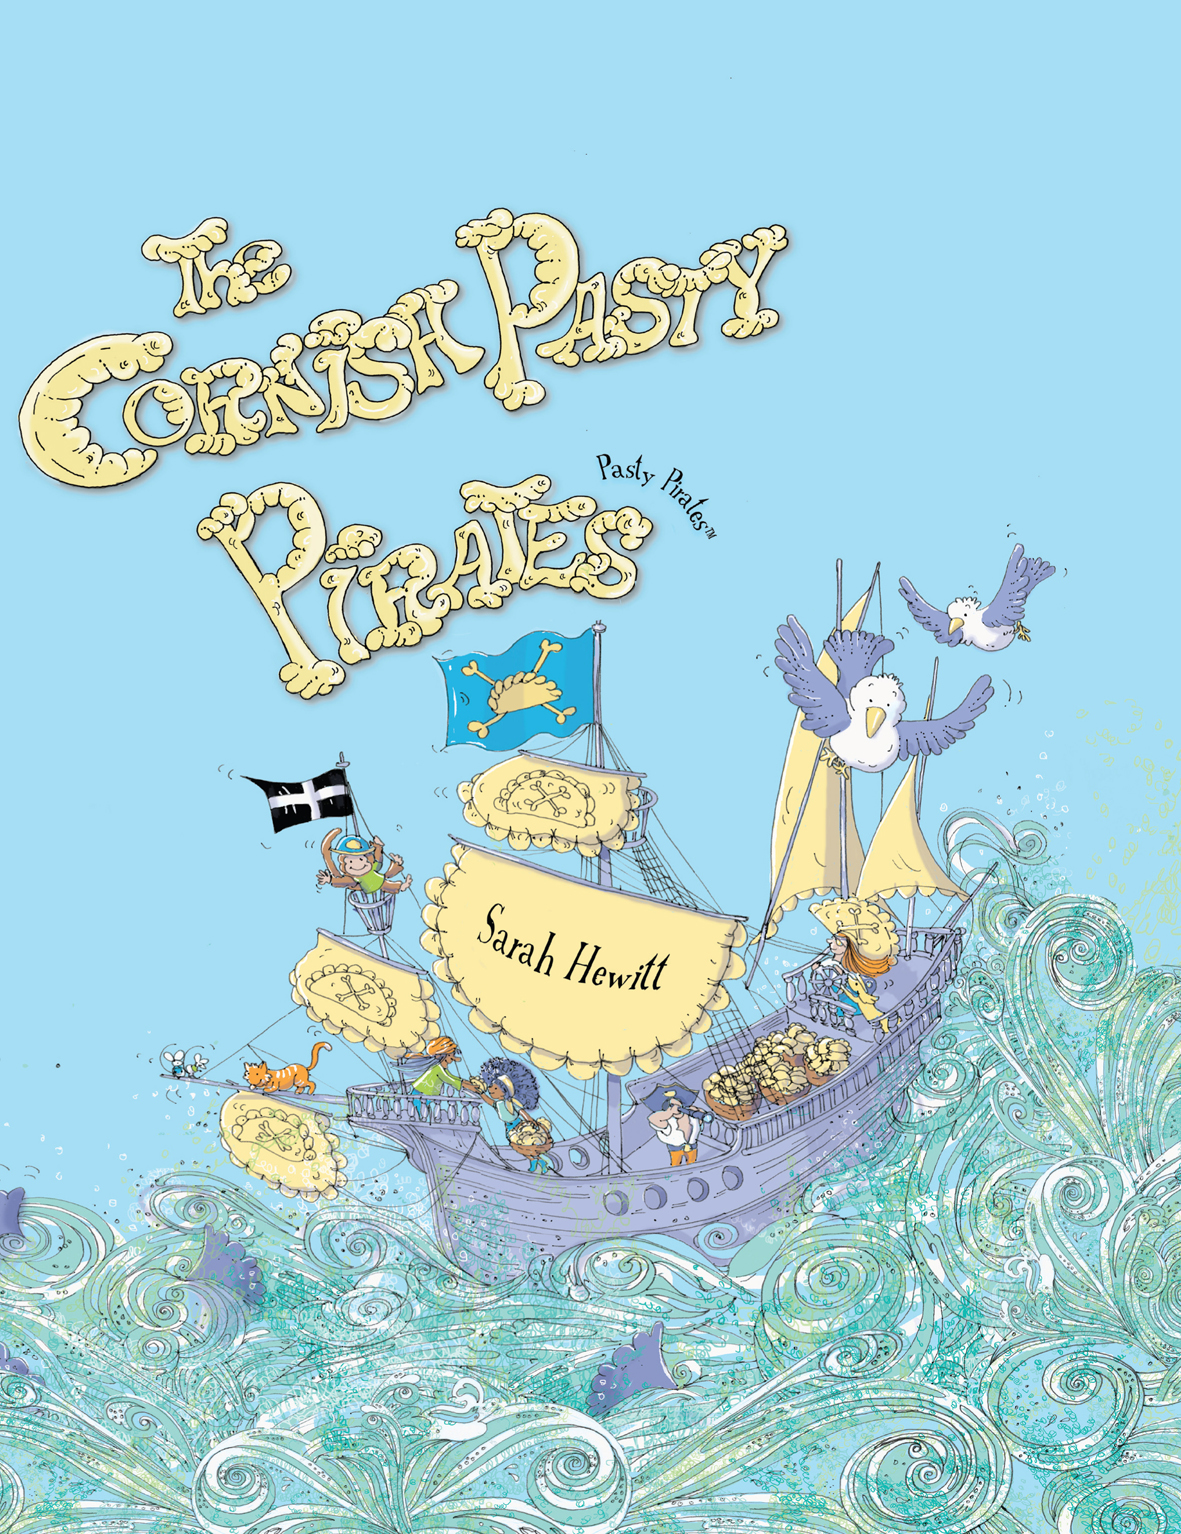 The Cornish Pasty Pirates